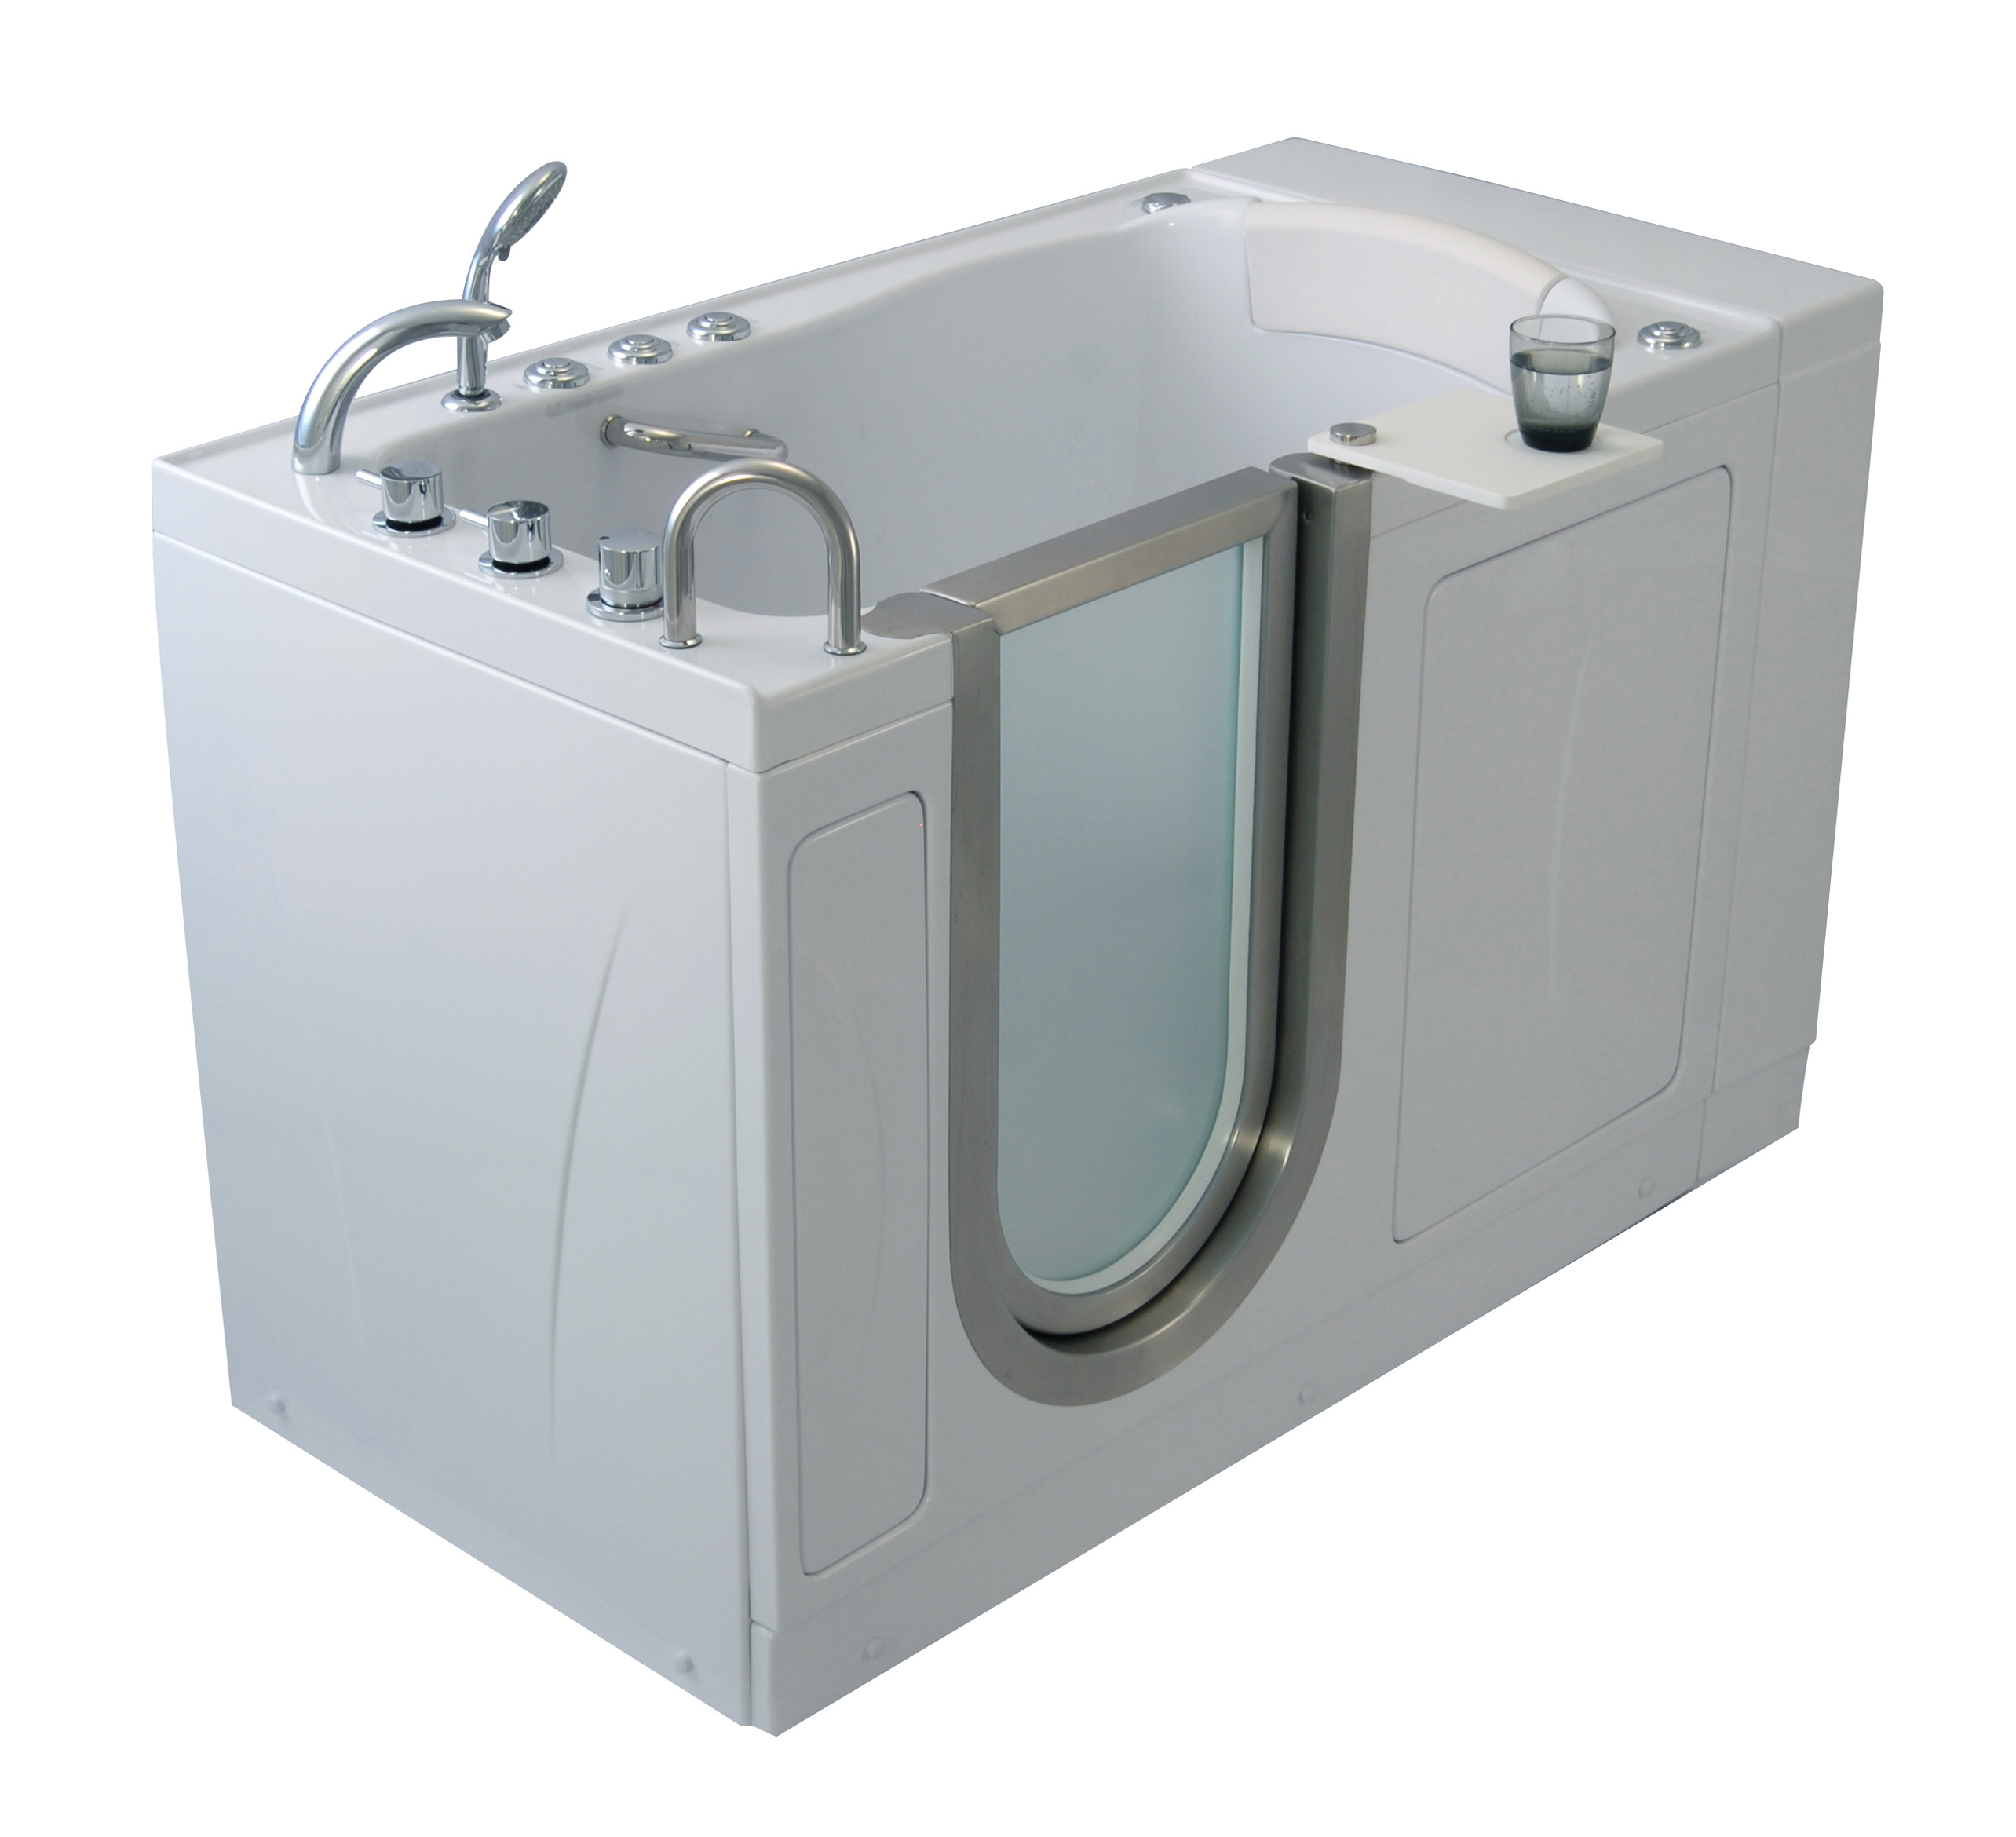 Nice Small Country Bathroom Vanities Big Custom Bath Vanities Chicago Shaped San Diego Best Kitchen And Bath Bath Room Floor Youthful Flush Mount Bathroom Light With Fan BrightBathroom Shower Pans Plumbing Supplies National Walk In Tub And Handicapped Shower Supplier Announces A ..